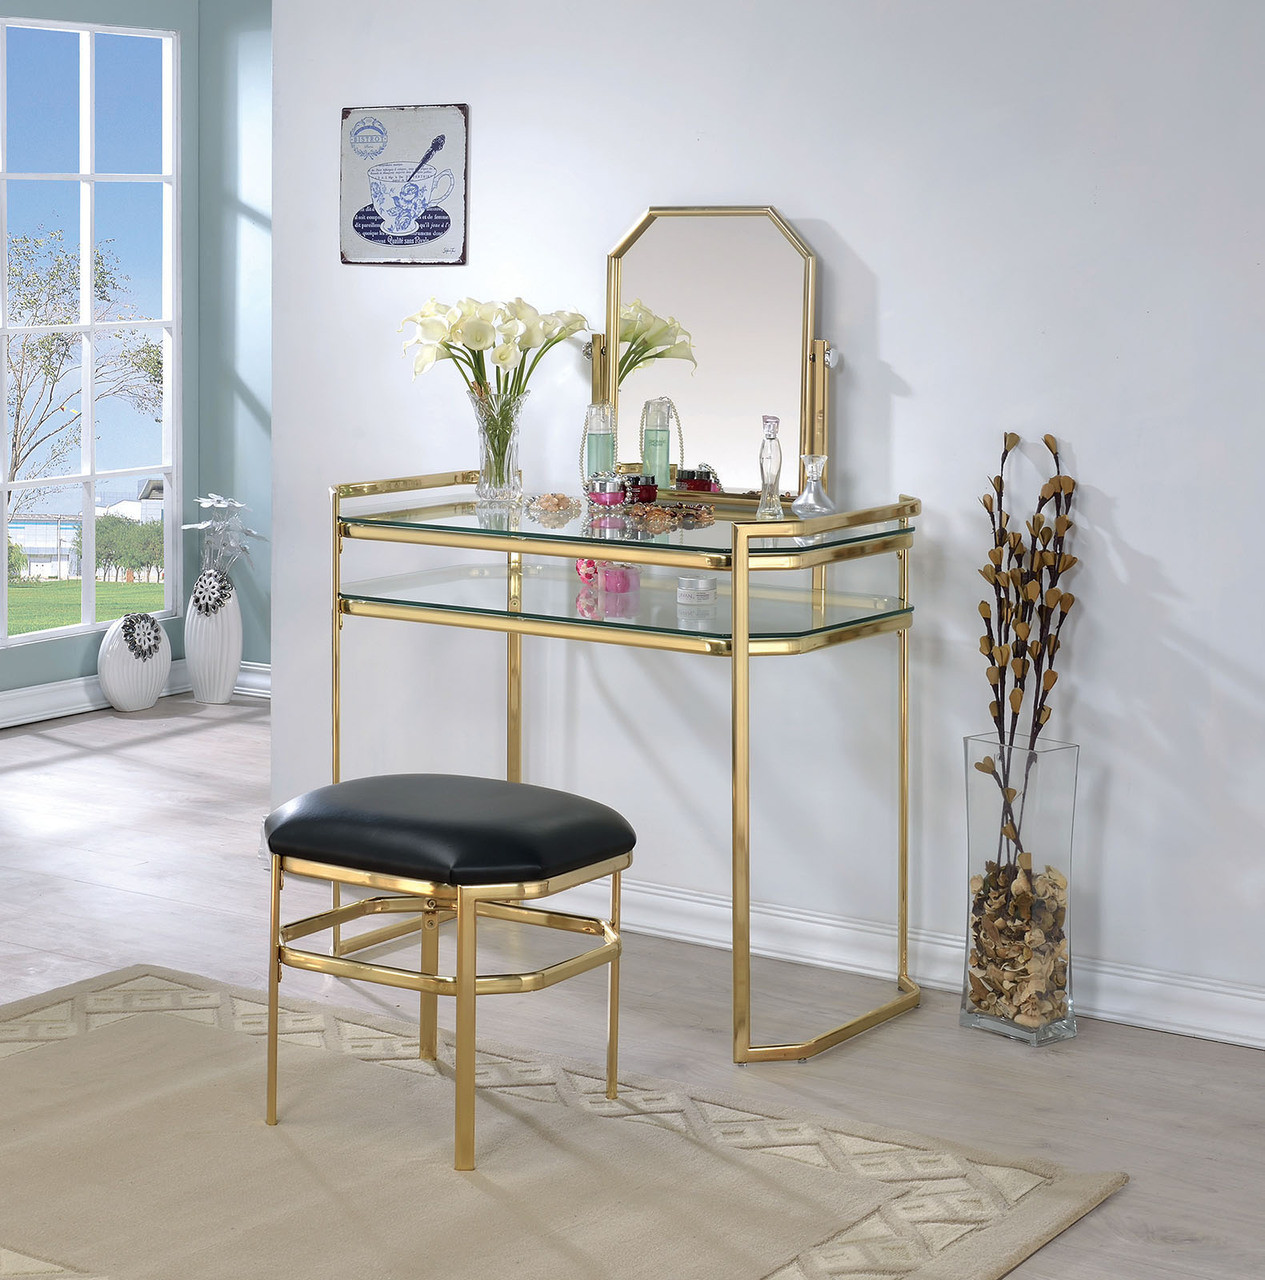 Arabella Gold Metal Makeup Set with Mirror ... & Arabella Gold Metal Makeup Vanity Table Set with Mirror